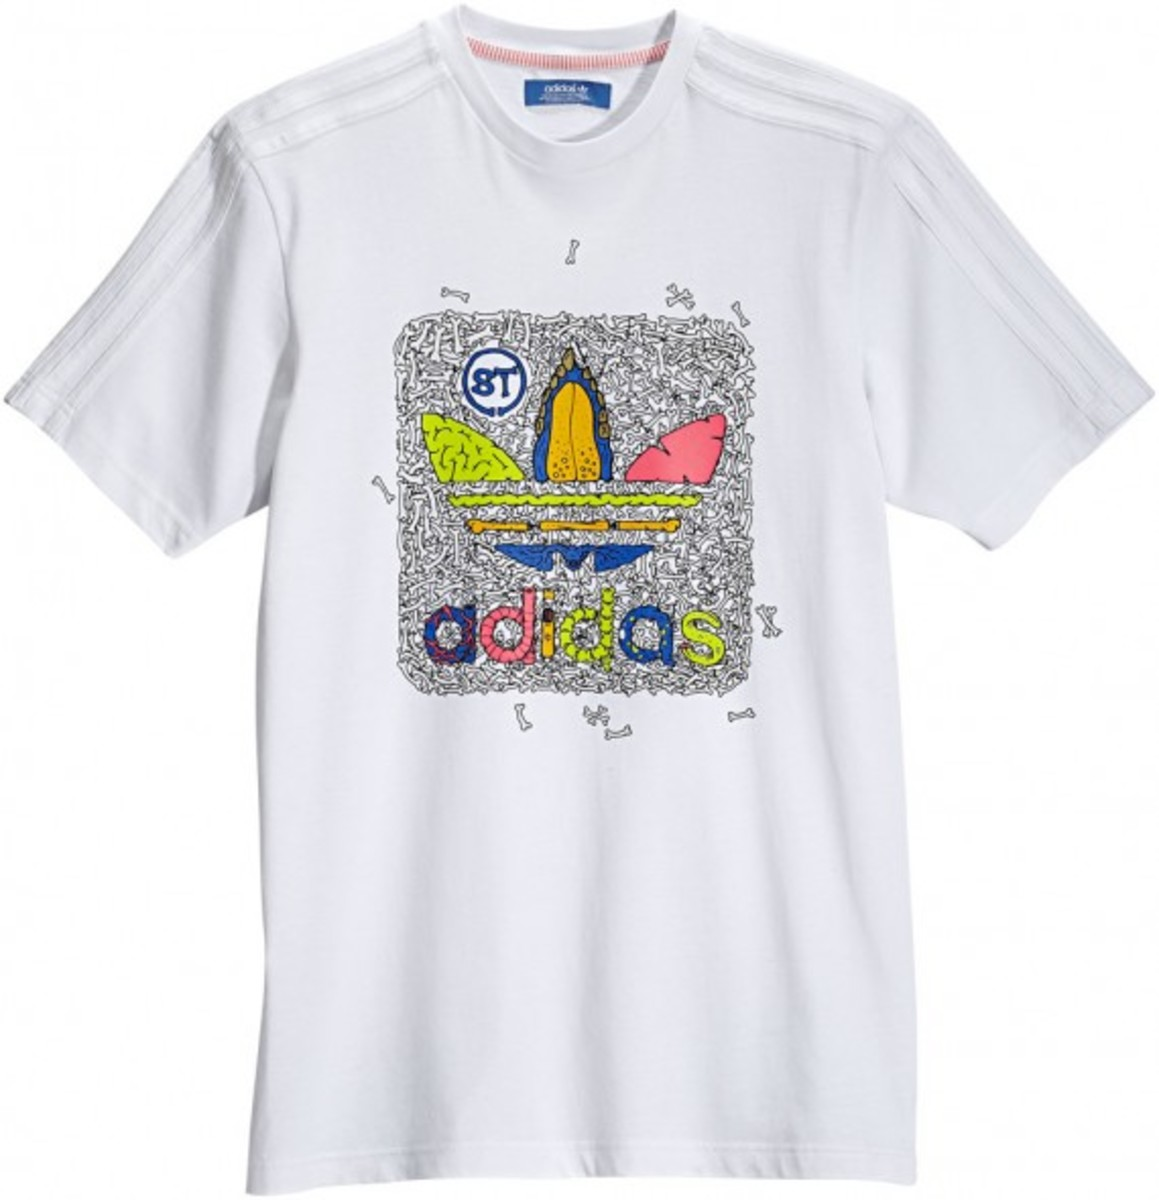 adidas-originals-st-collection-fall-2011-04